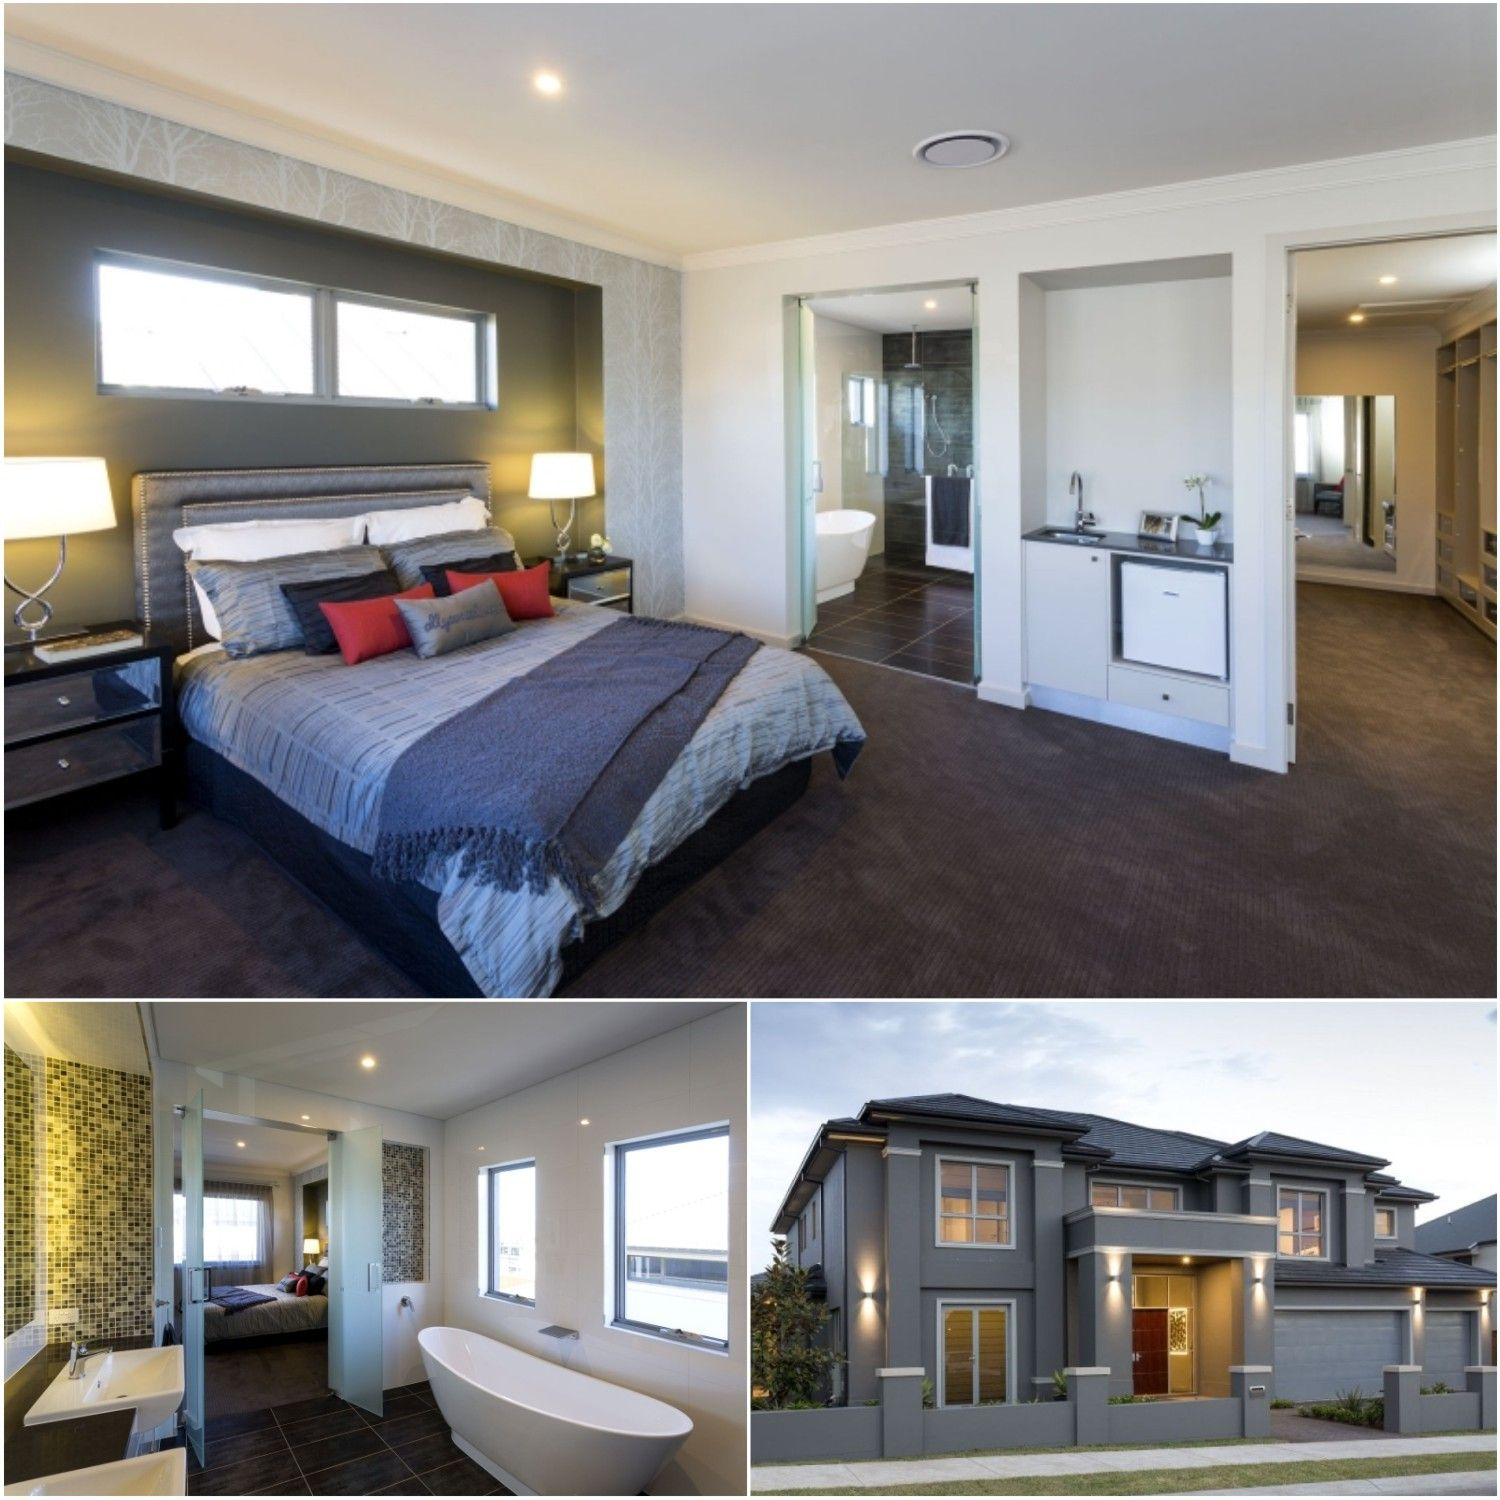 Build your newhome with this stunning master bedroom